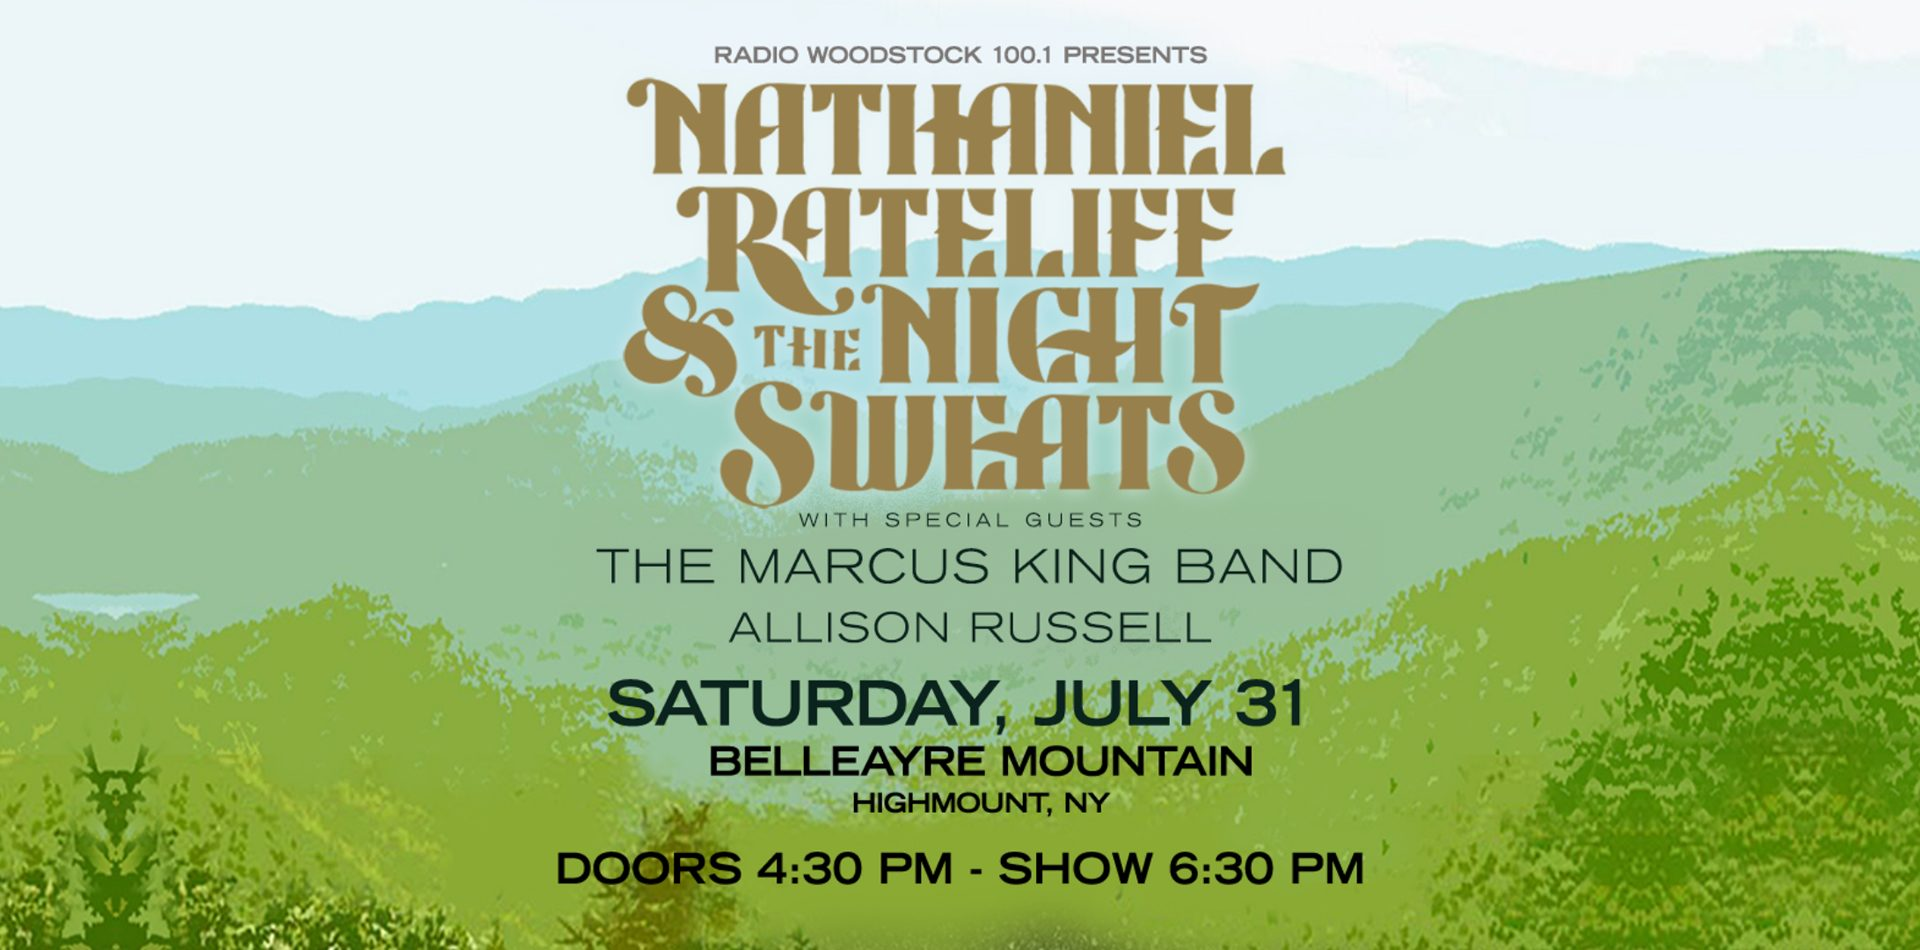 Nathaniel Rateliff Concert & the Night Sweats, July 31. Special Guests The Marcus King Band, Allison Russell. Doors open at 4:30pm - Show 6:30pm